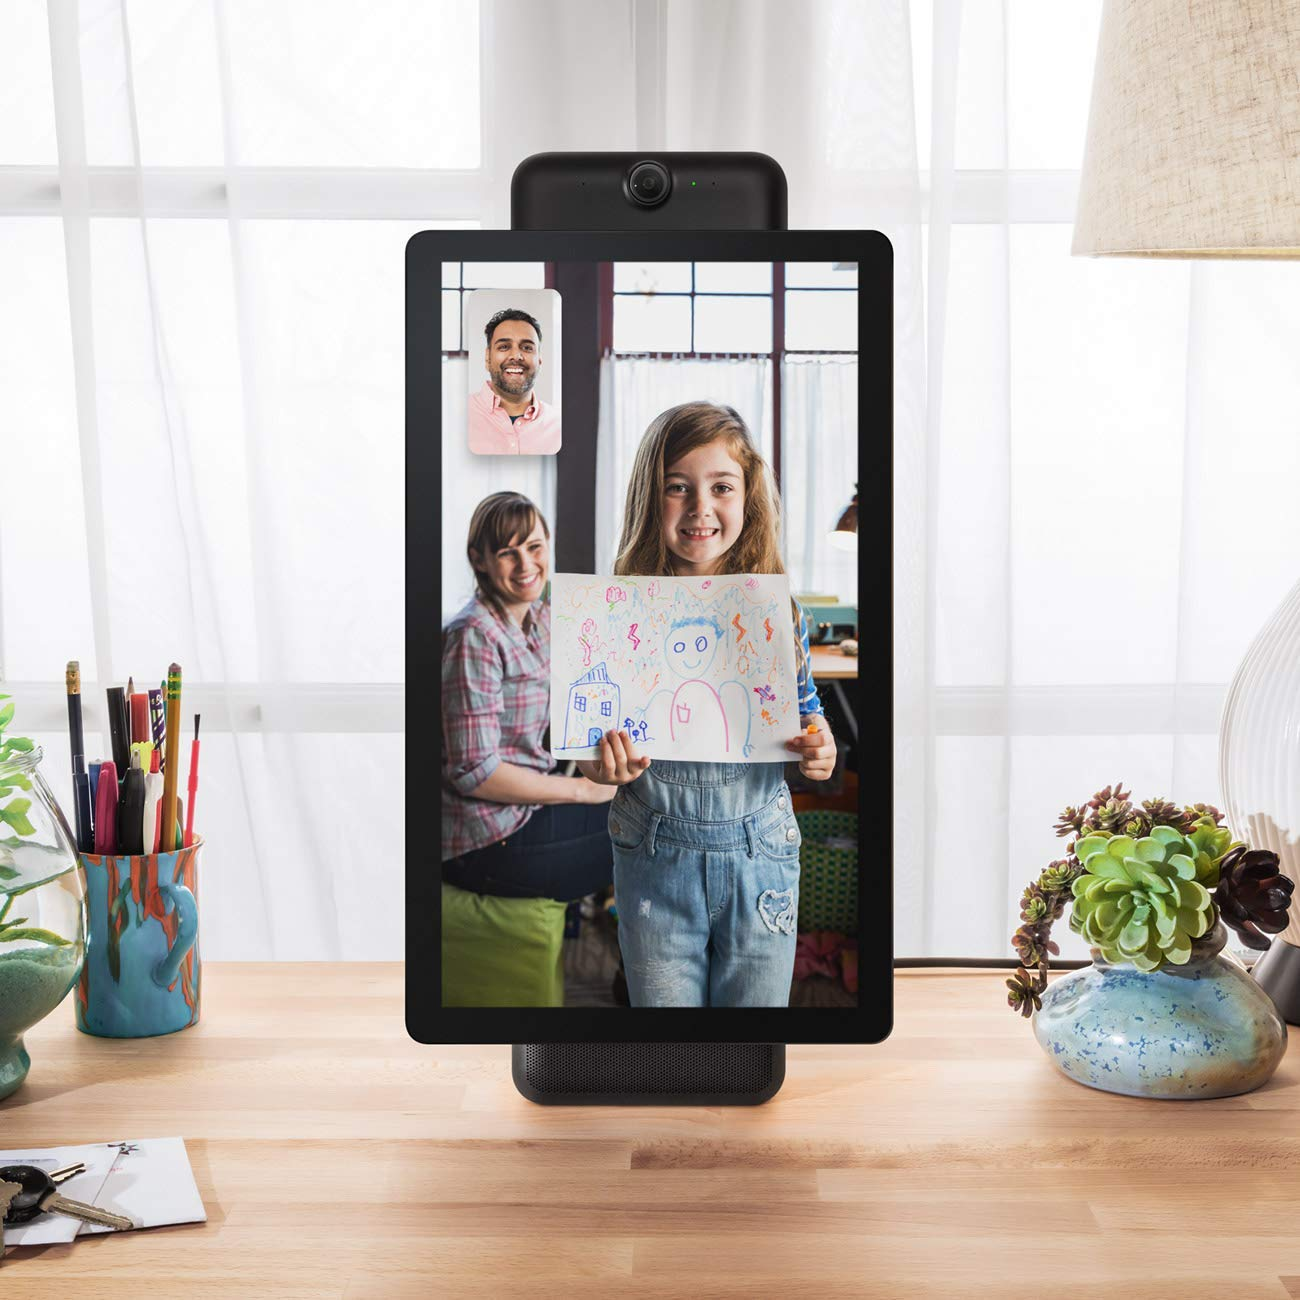 Facebook Portal Plus Rotating Video ChatFacebook Portal Plus Rotating Video Chat